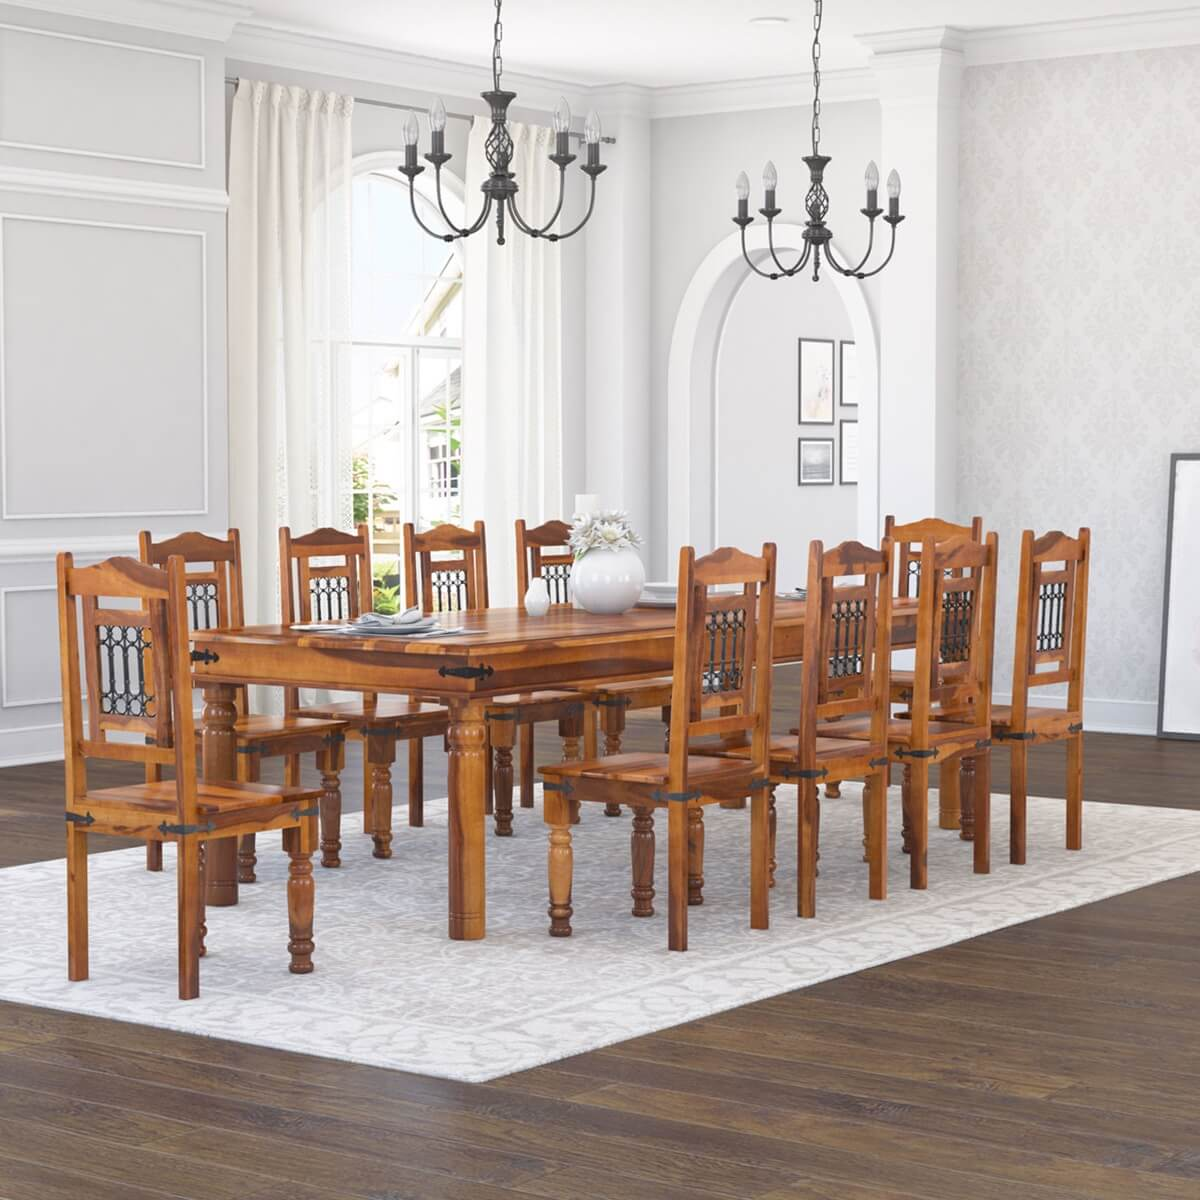 San Francisco Rustic Furniture Large Dining Table with 10  : 2704 from sierralivingconcepts.com size 800 x 800 jpeg 68kB